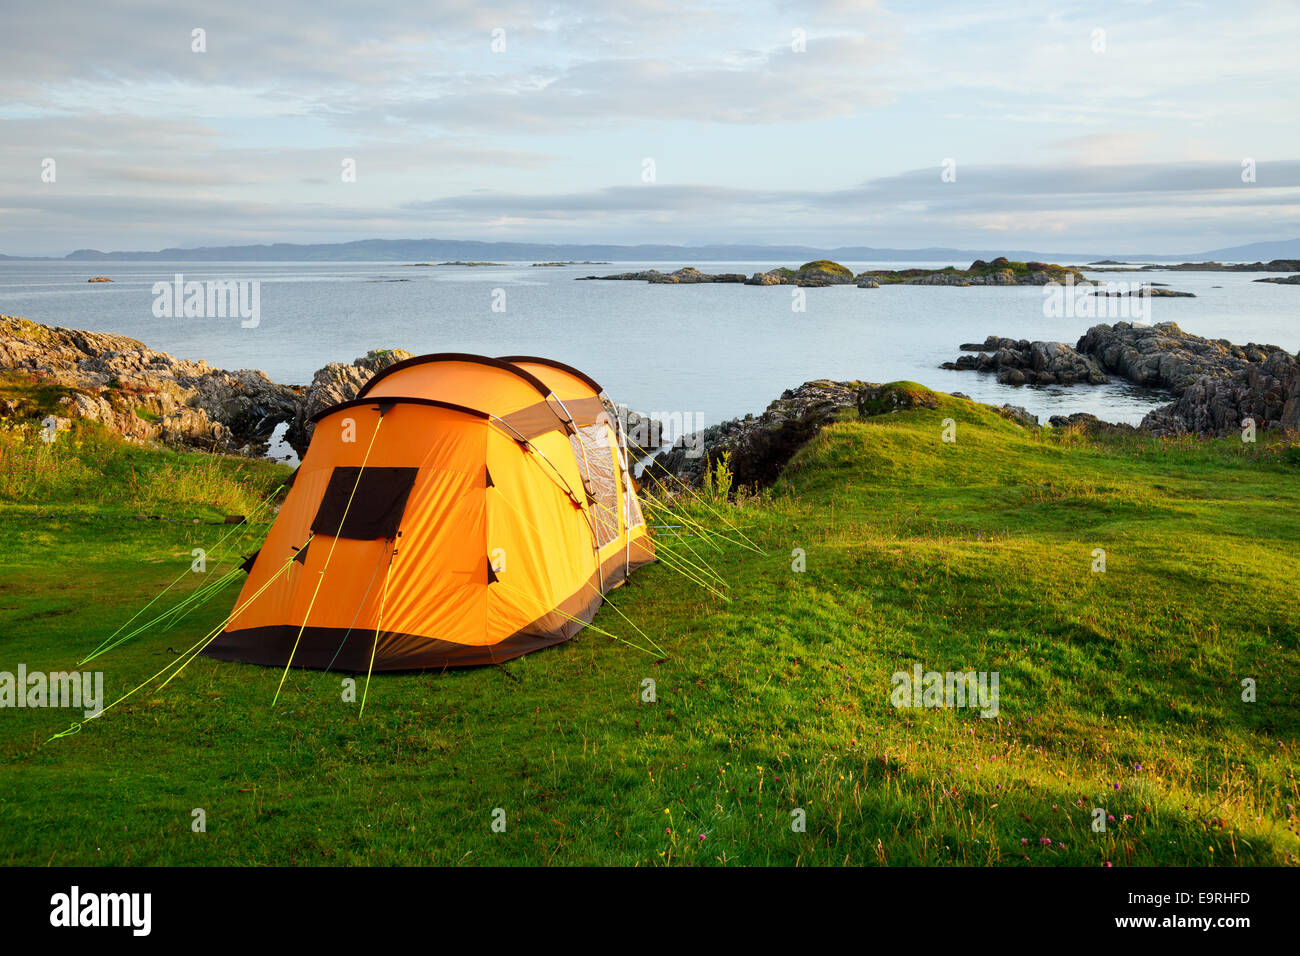 Orange camping tent on a shore in a morning light - Stock Image